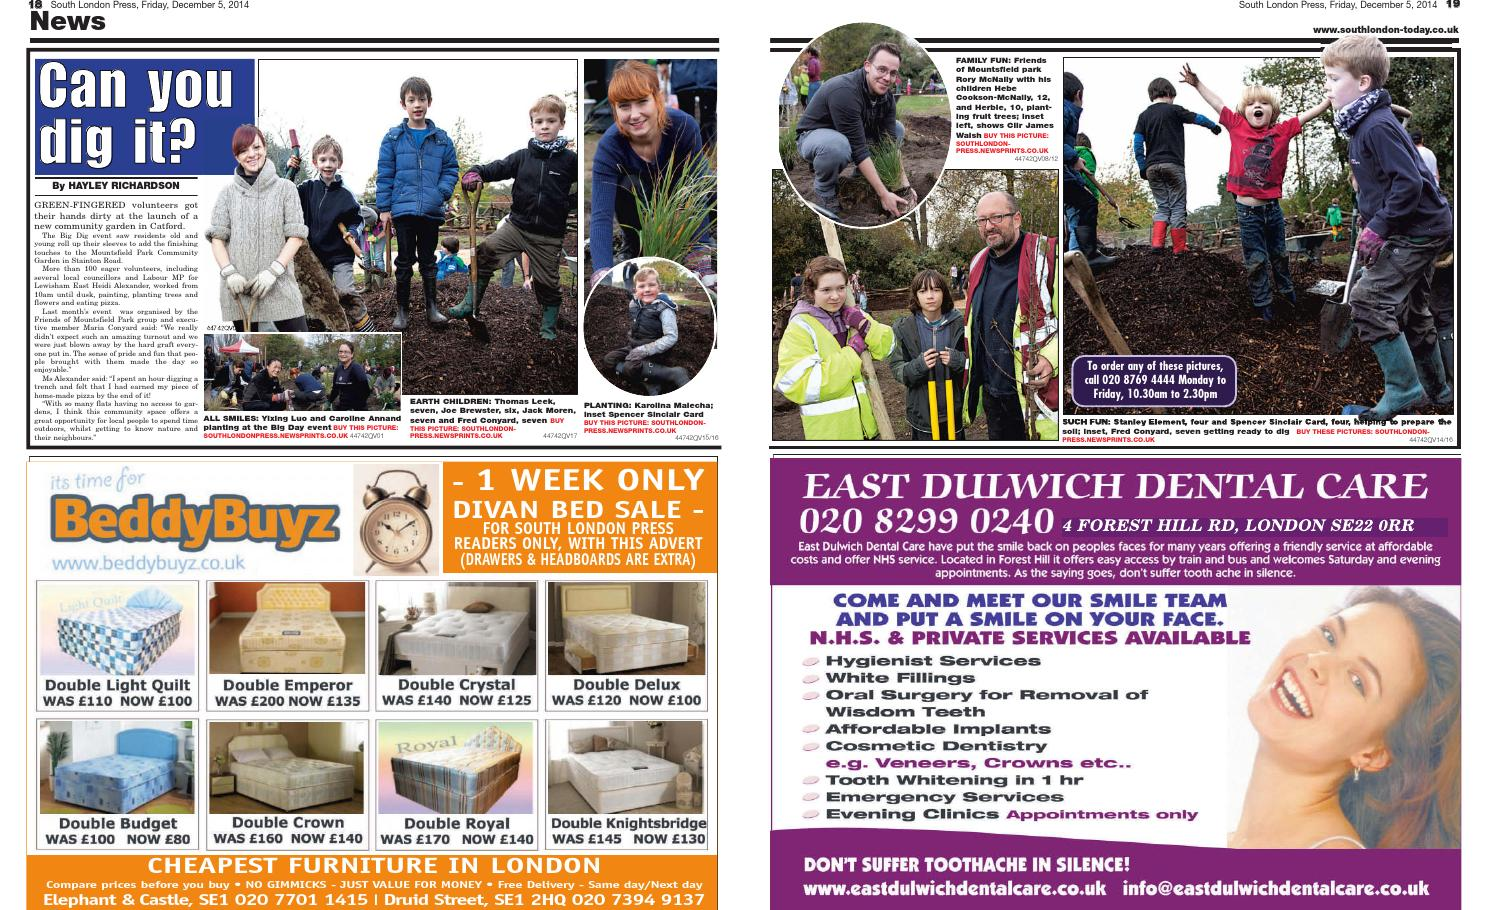 South London Press: Catford Community Garden Project by Hayley